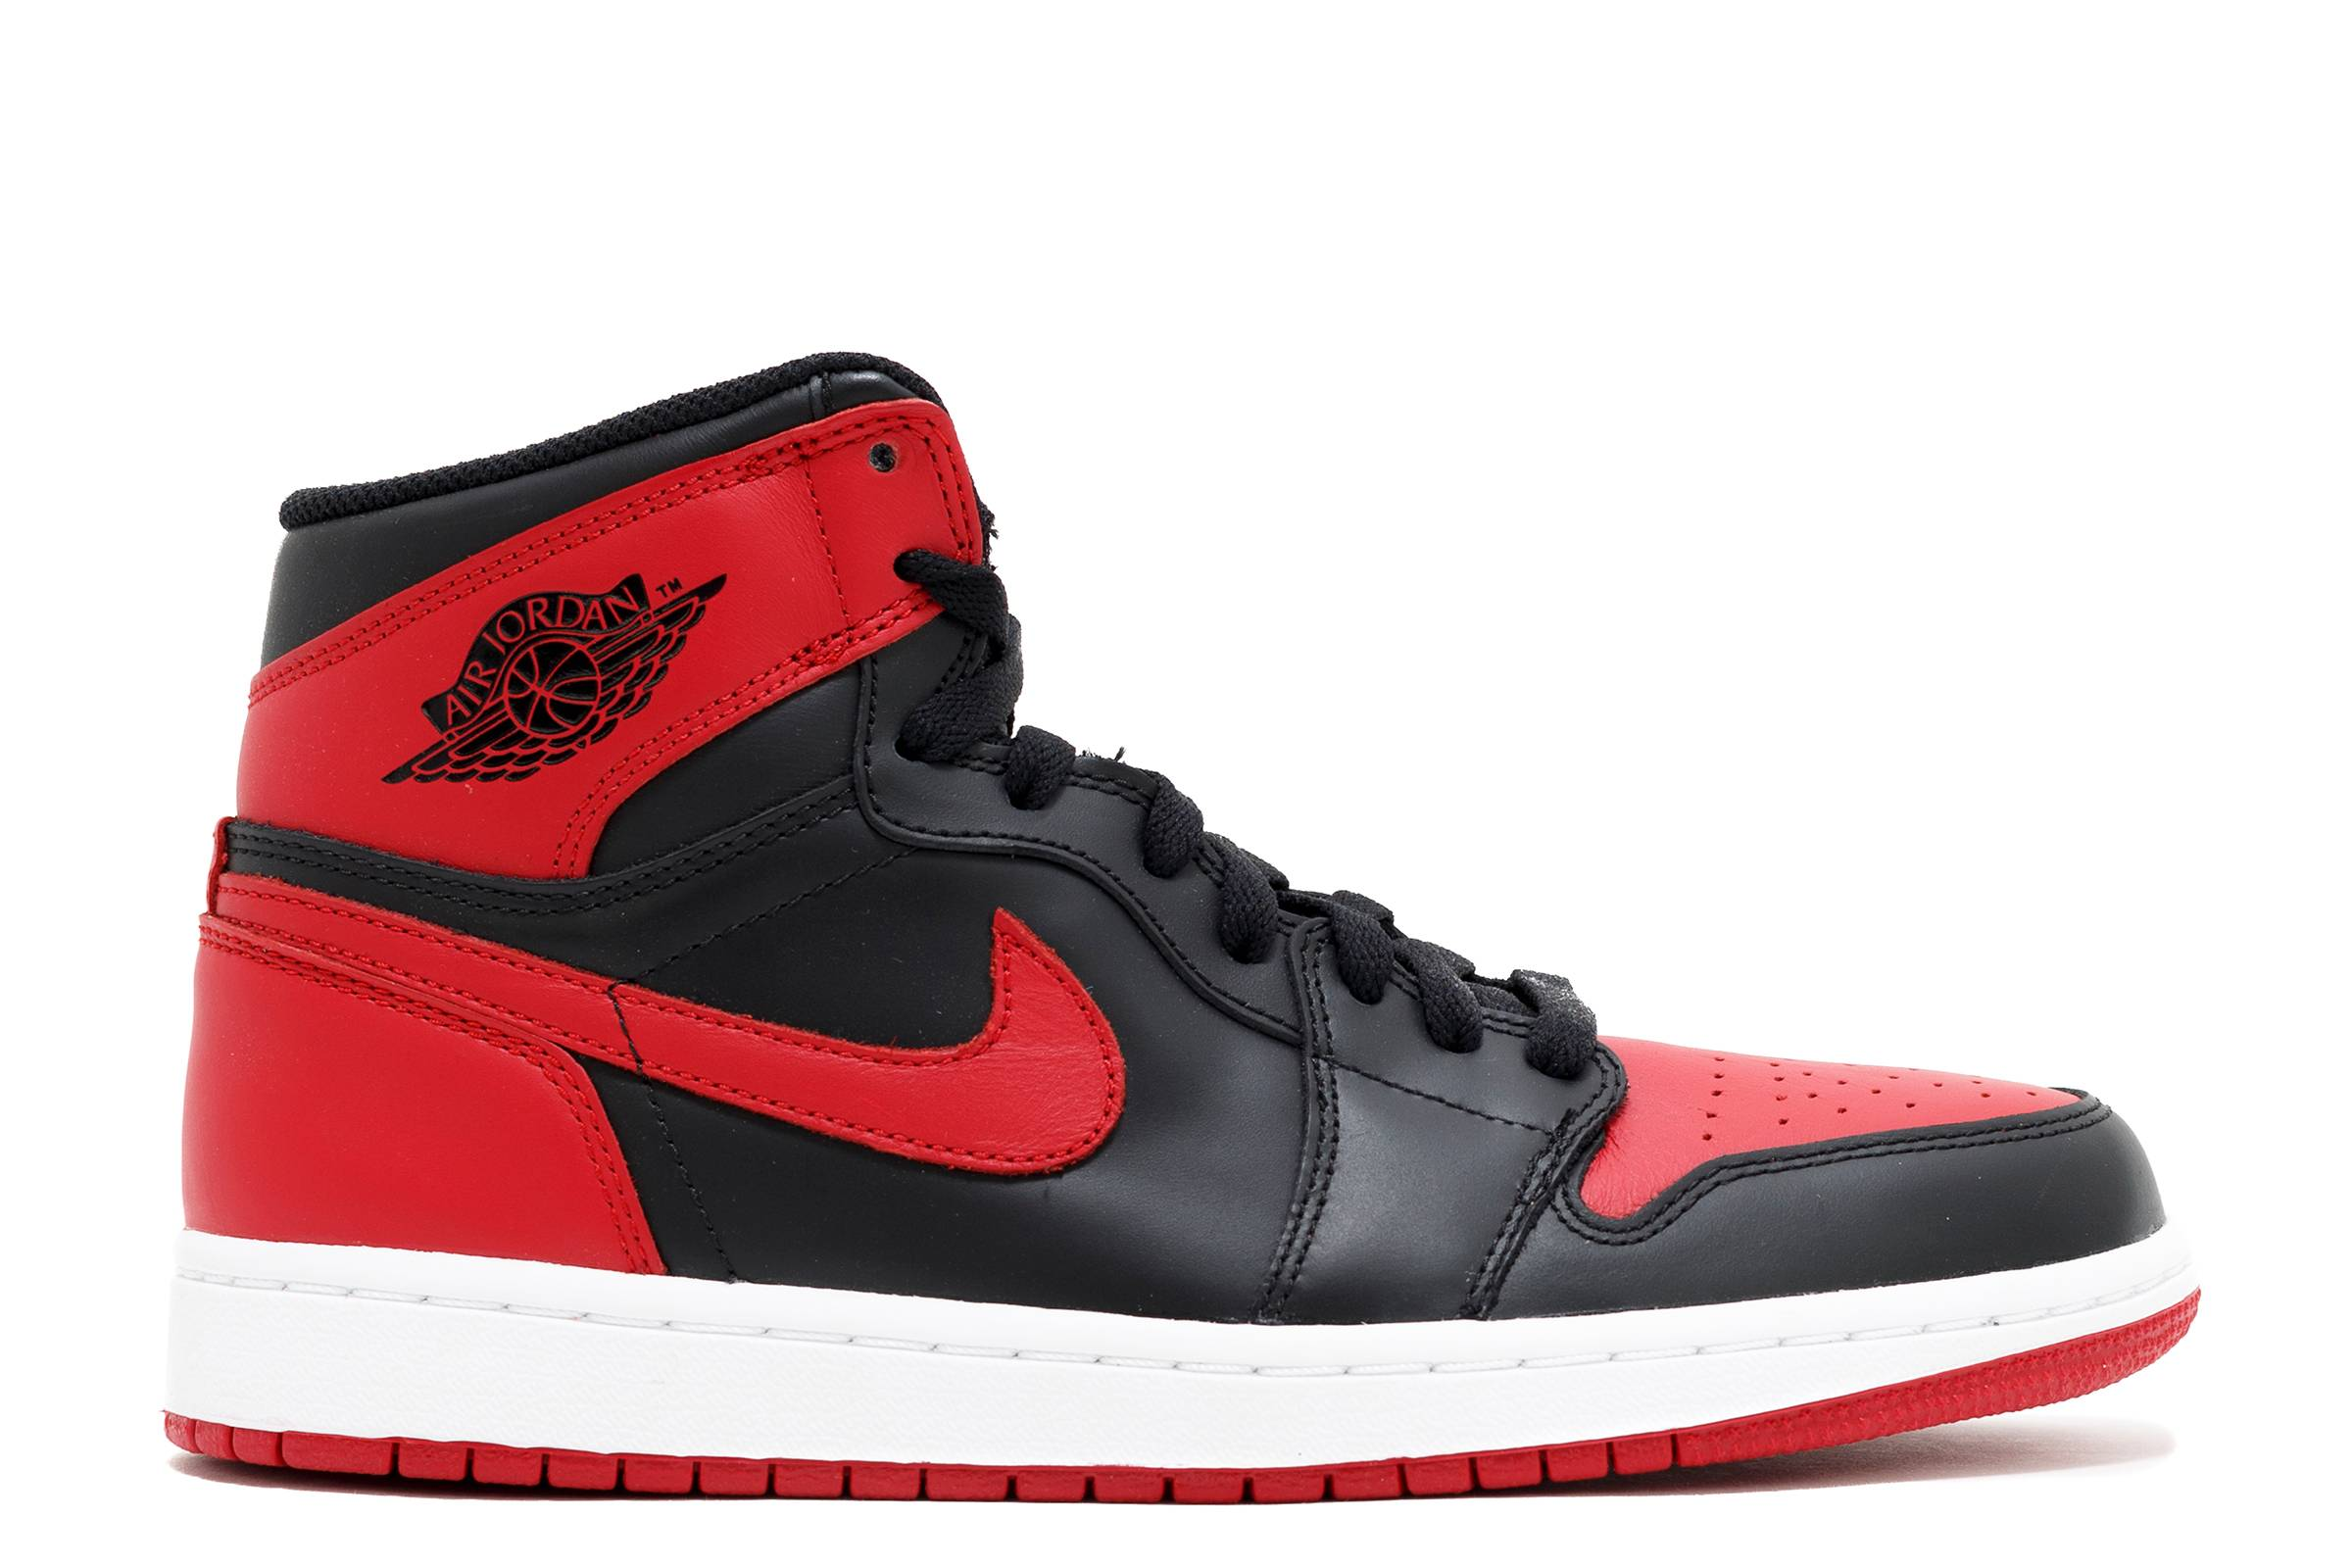 545e9d6cac2b9b The One That Started It All  A History of the Jordan 1 - Jordan 1 ...